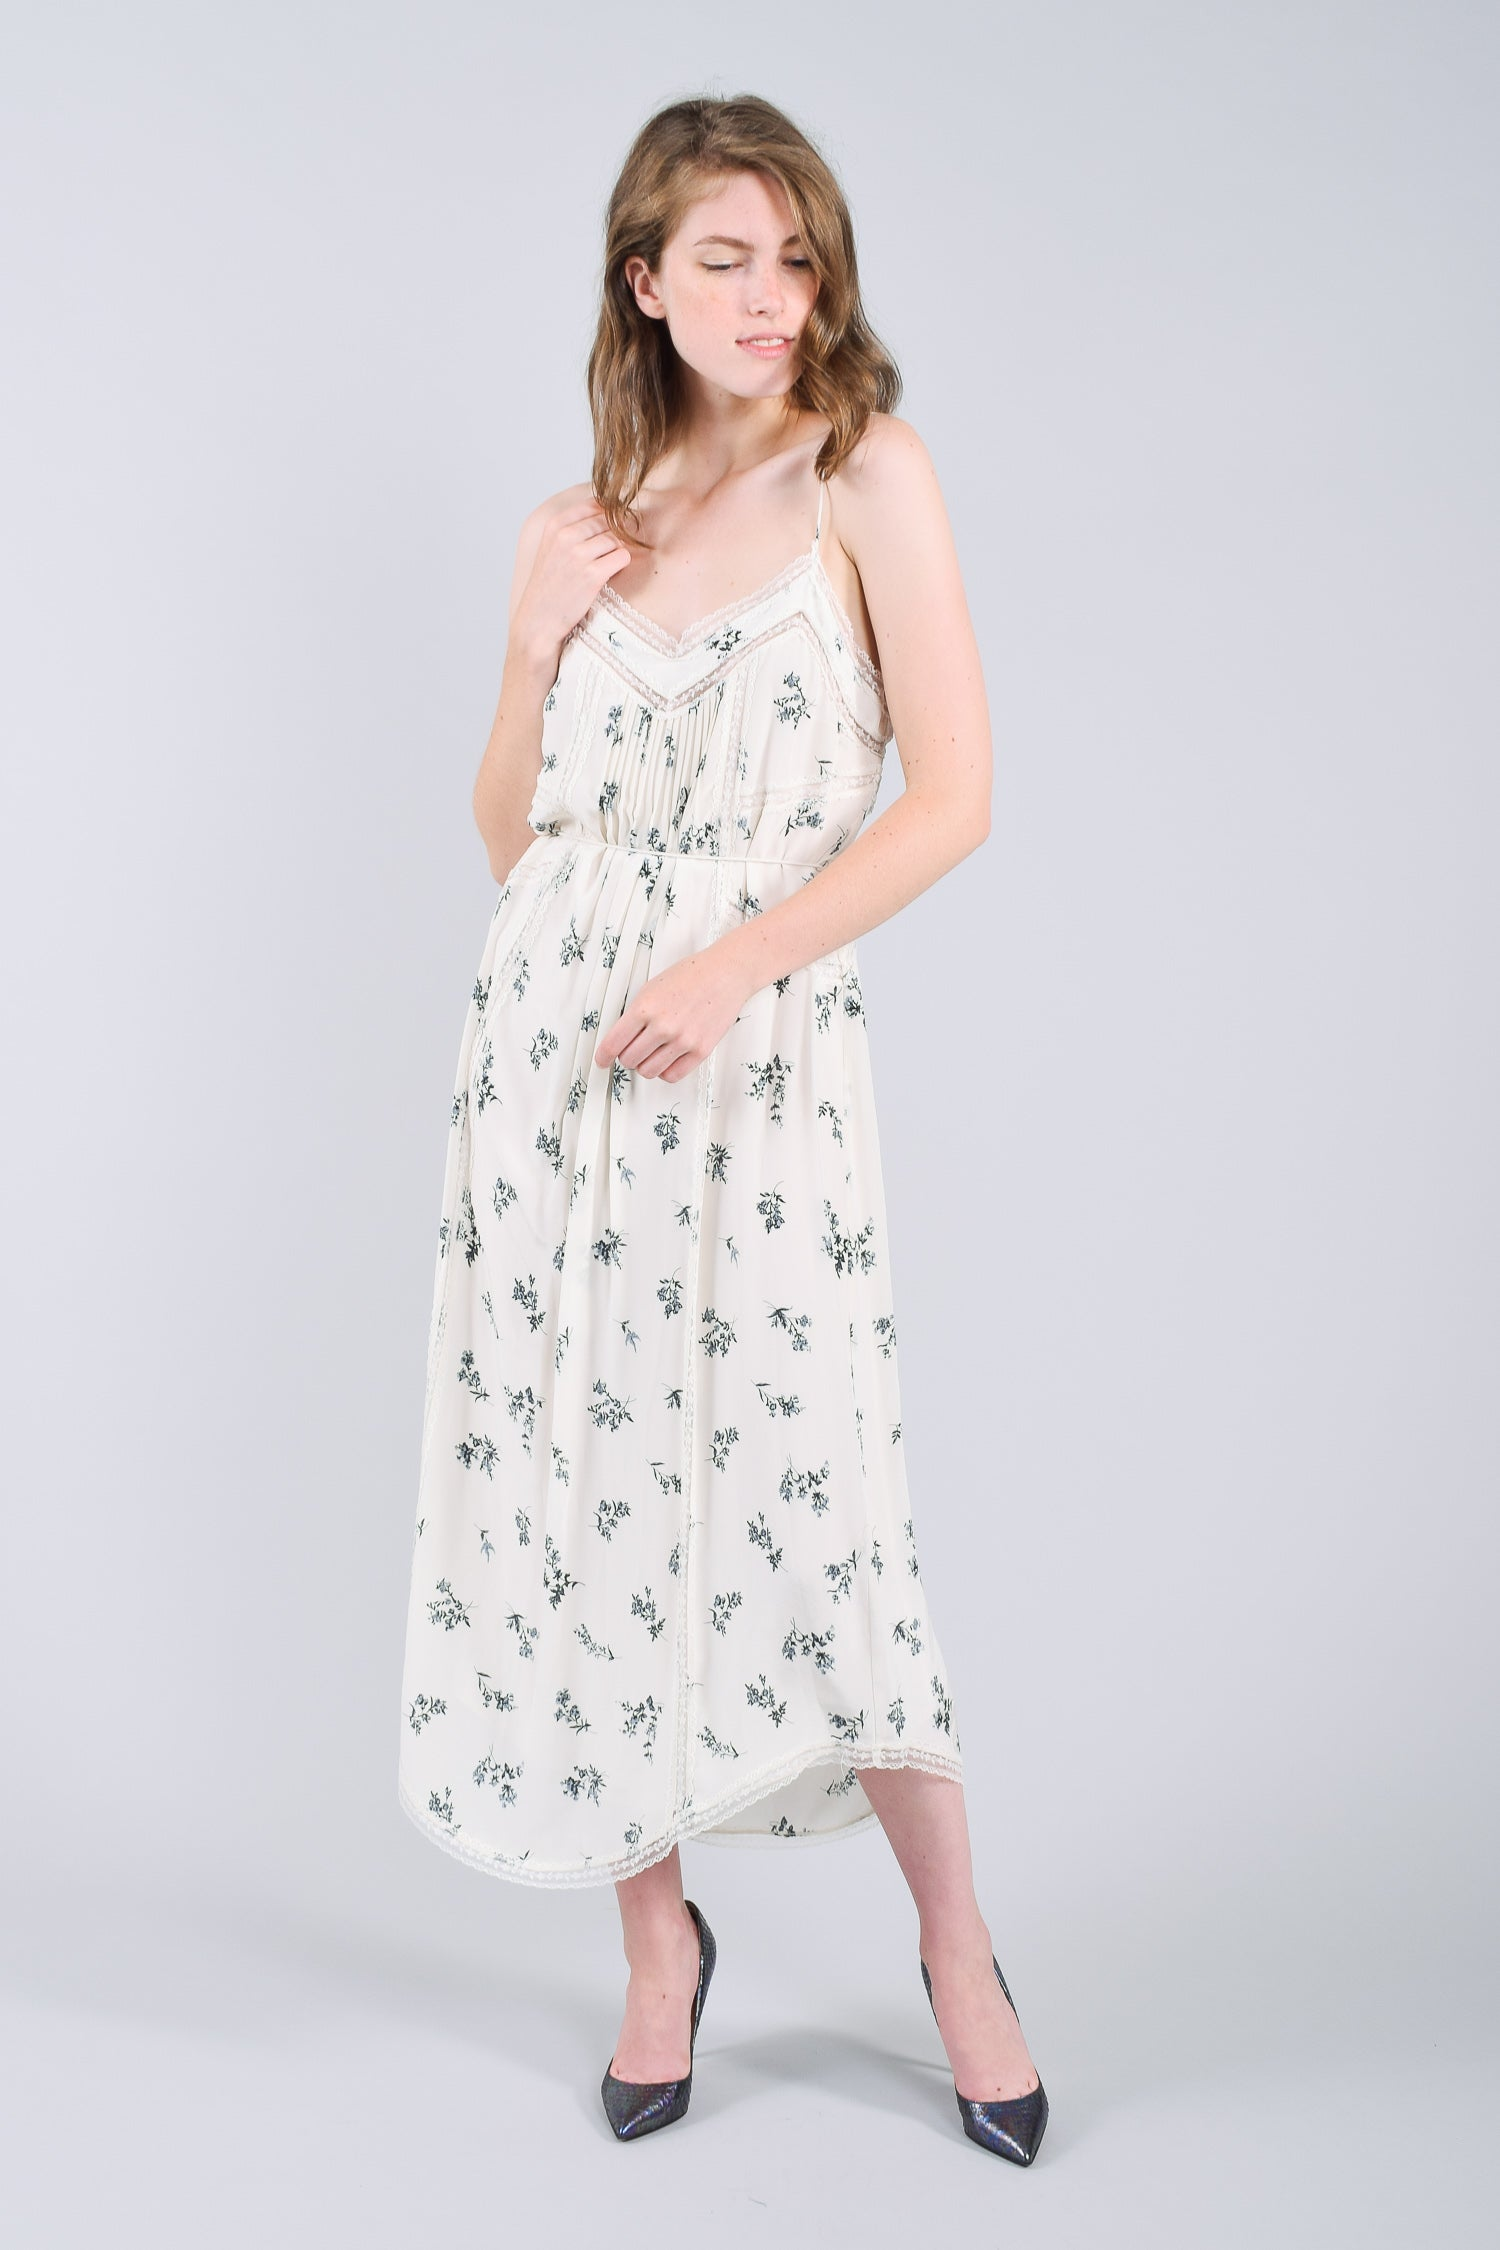 Zimmermann White and Blue Floral Dress Size 0